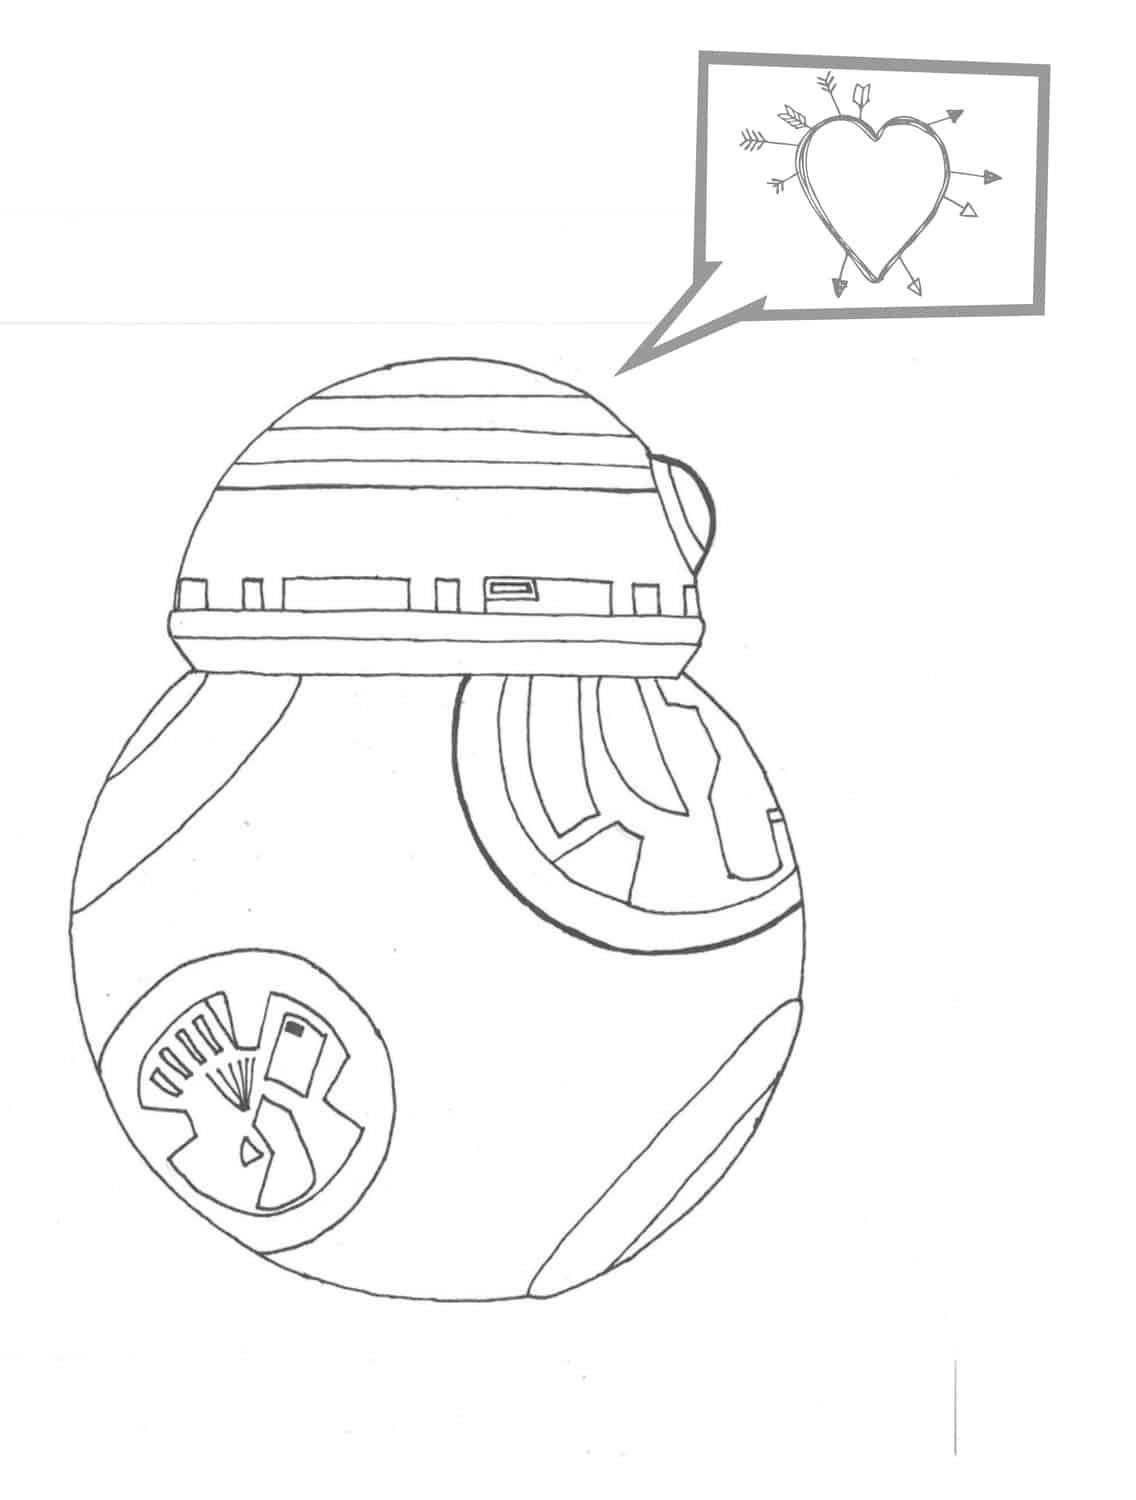 bb8 love coloring page